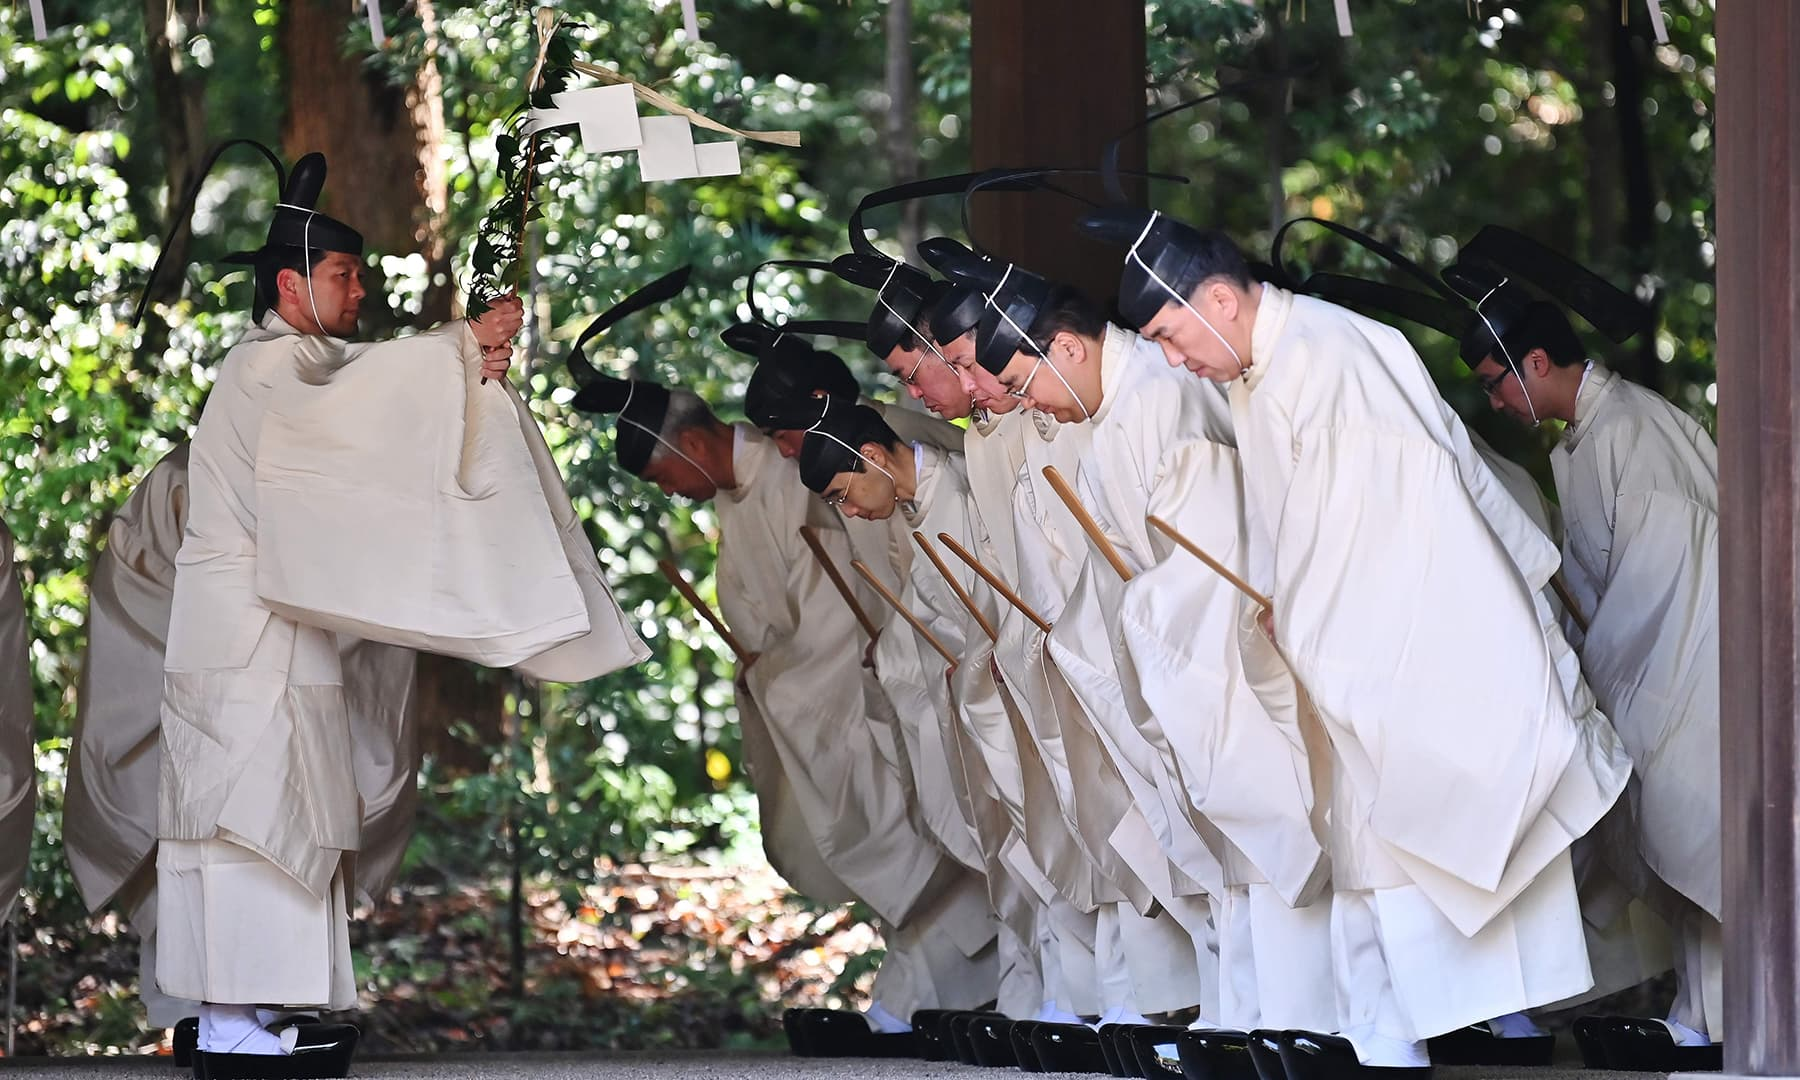 Shinto priests recite religious words before entering the main building to conduct a festive ceremony to report the enthronement of the new emperor to the royal family's ancestors at Meiji Shrine in Tokyo. — AFP